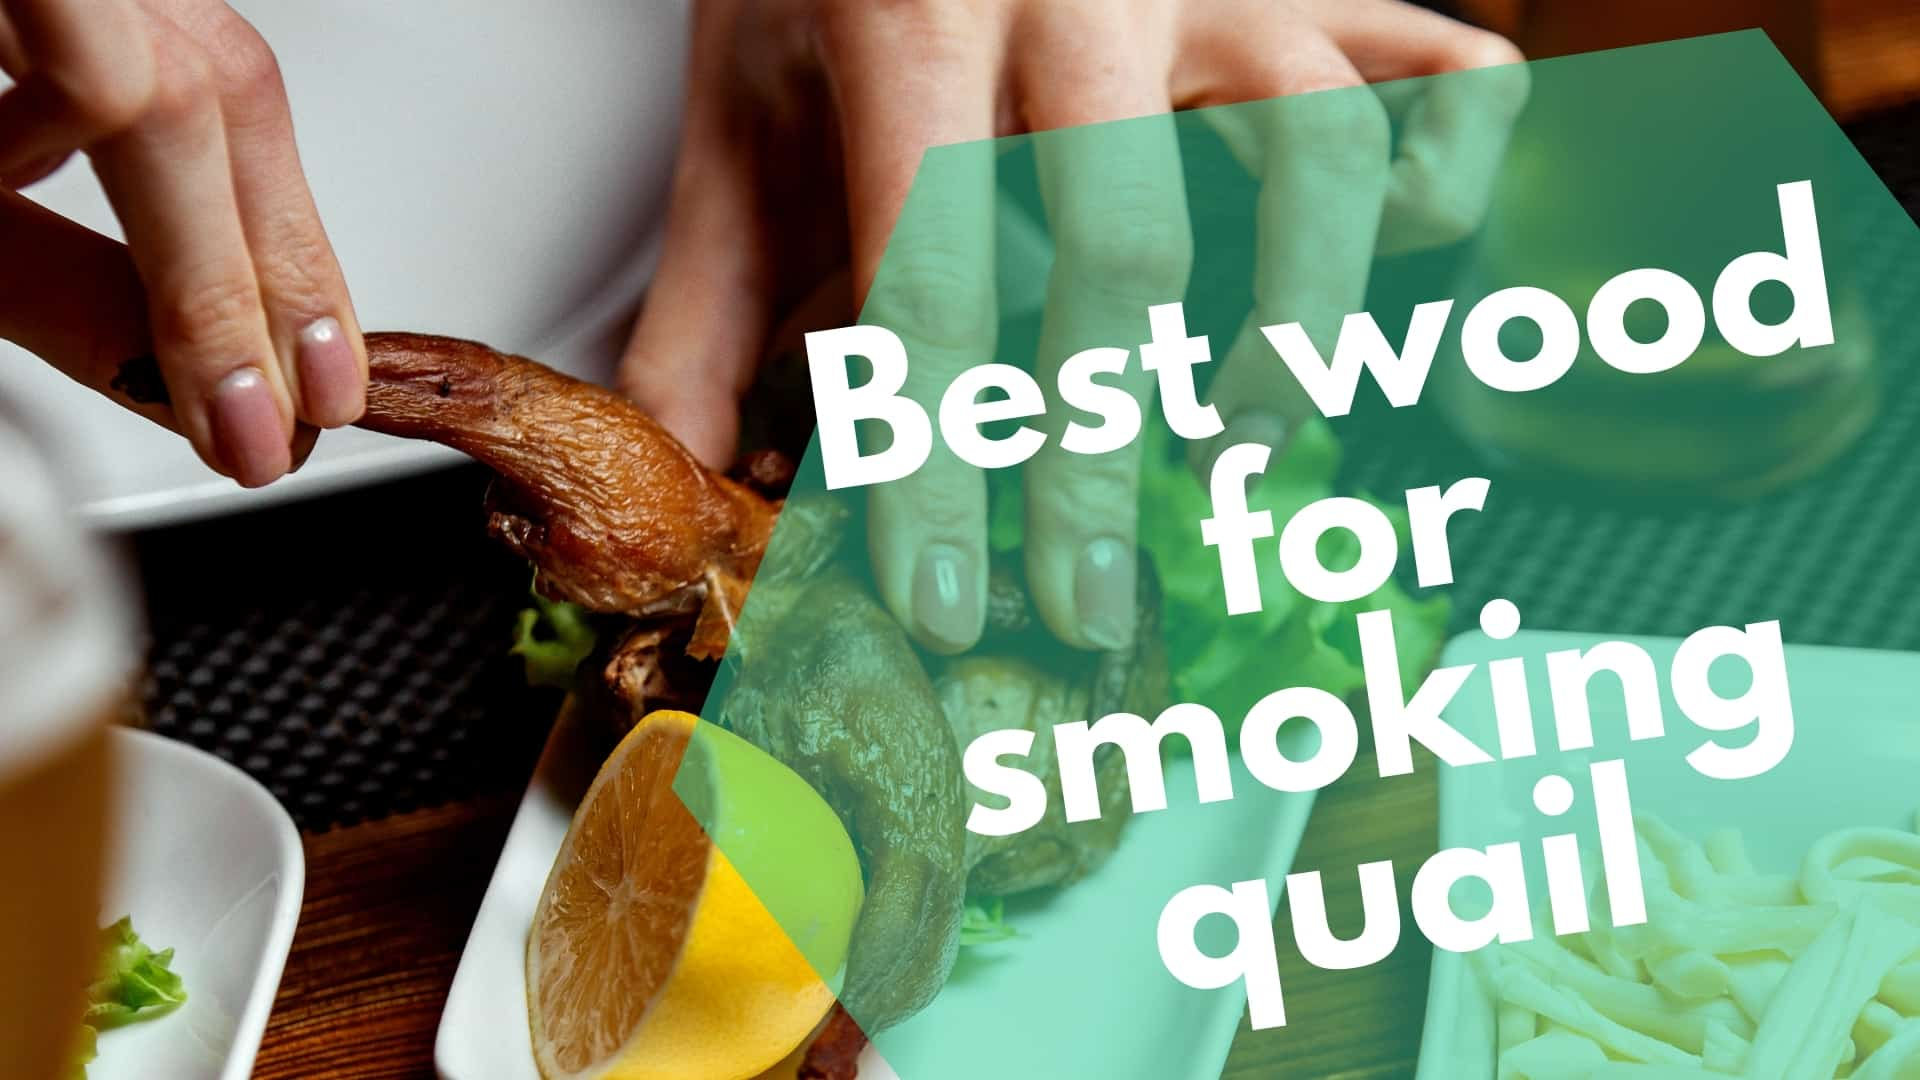 Best wood for smoking quail